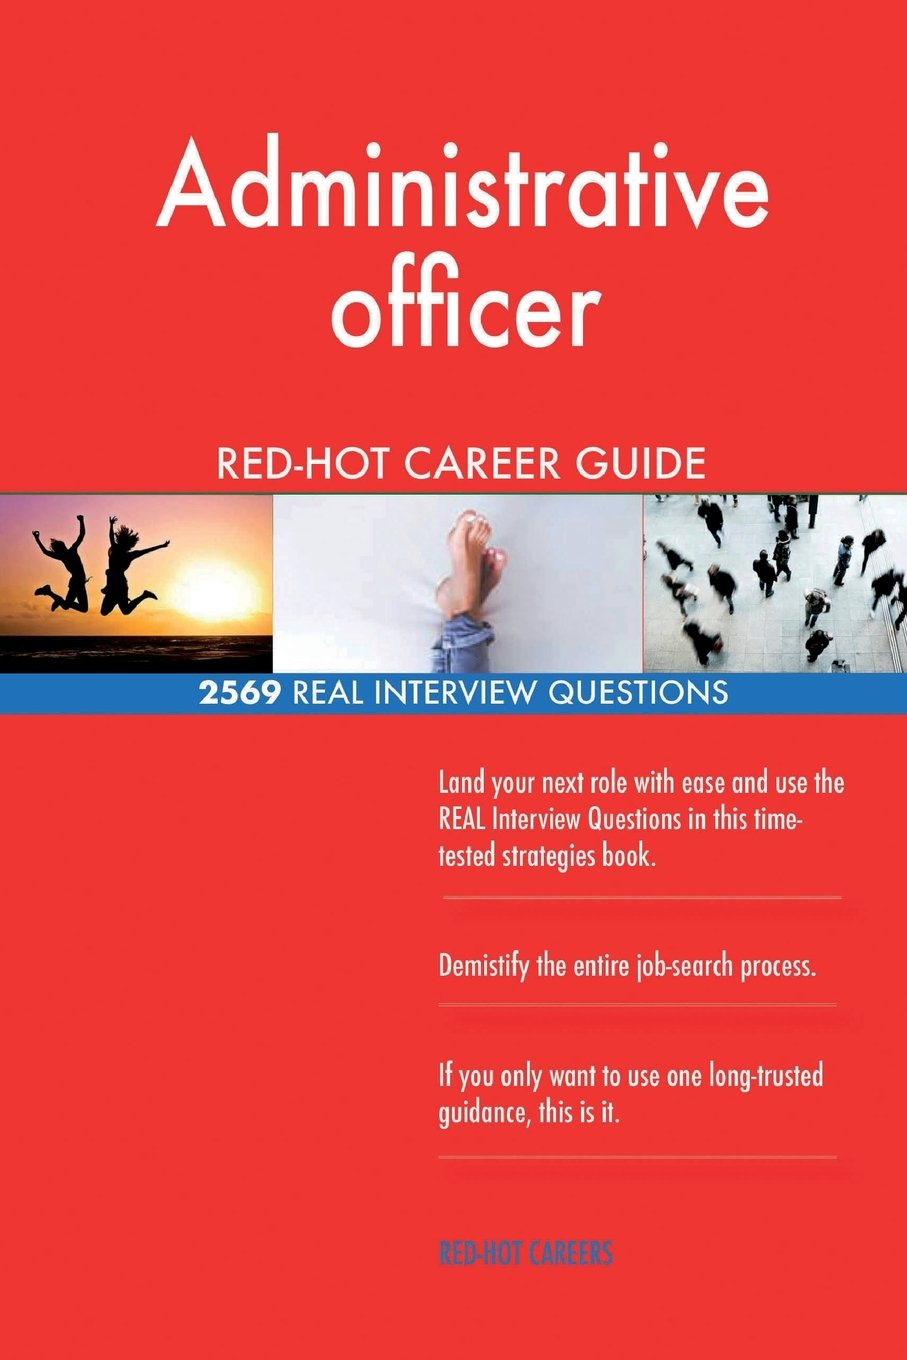 Administrative officer RED-HOT Career Guide; 2569 REAL Interview Questions ebook